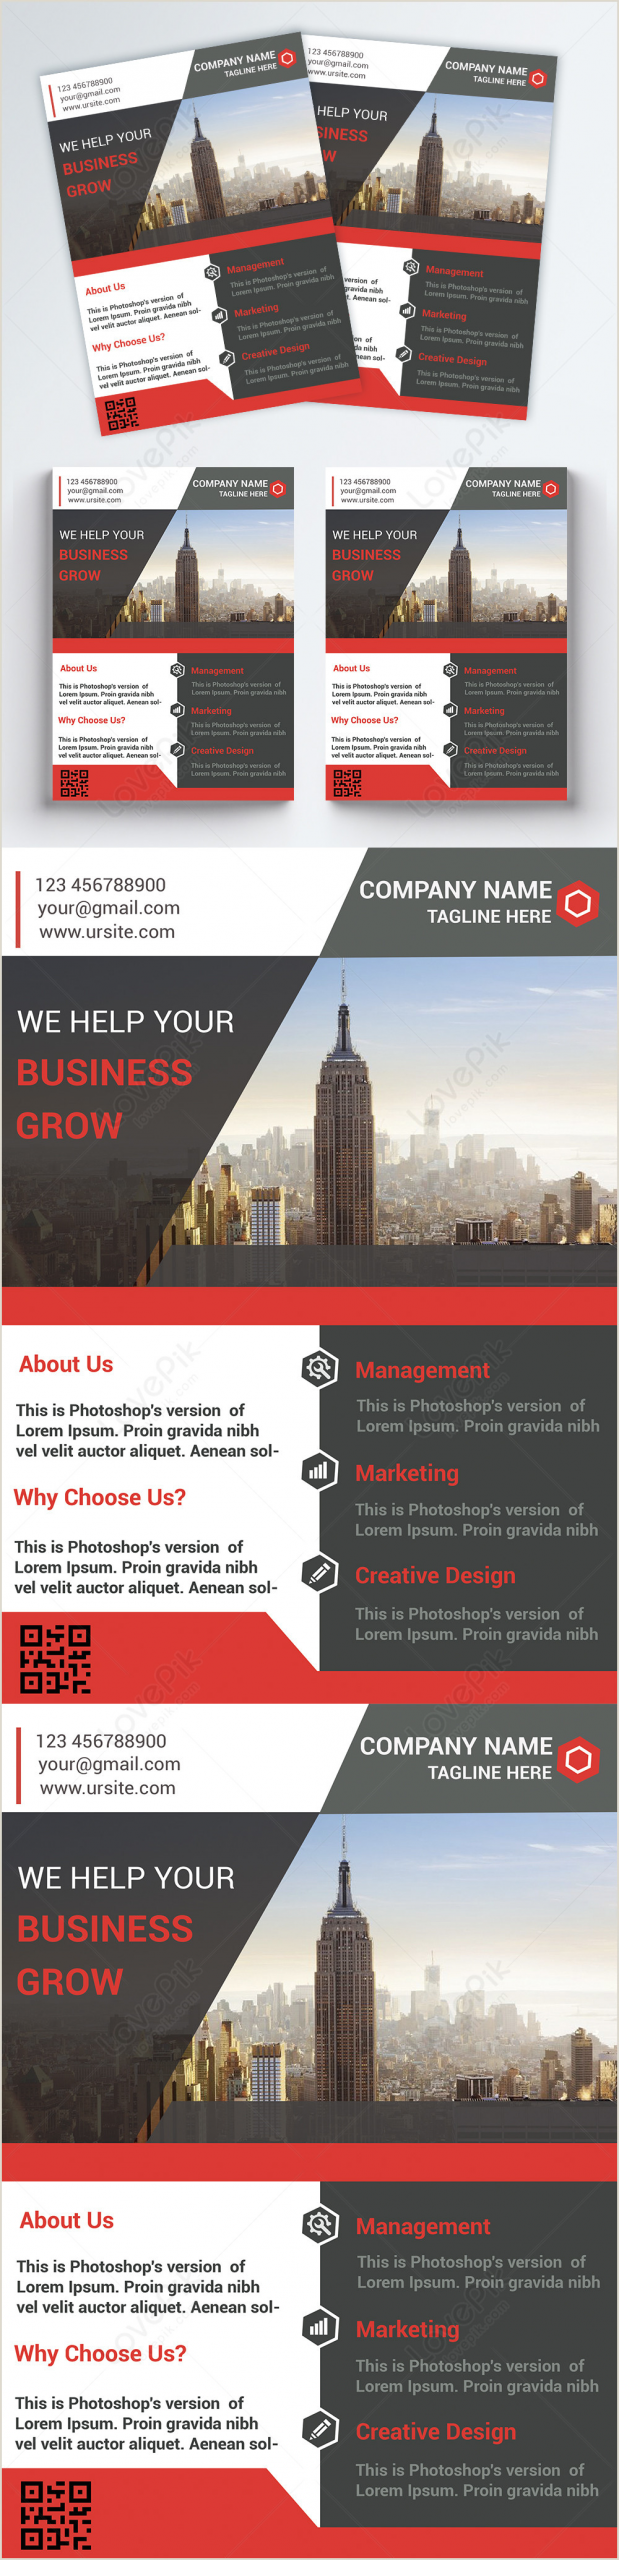 Usiness Cards High Quality Corporate Business Flyer Template Image Picture